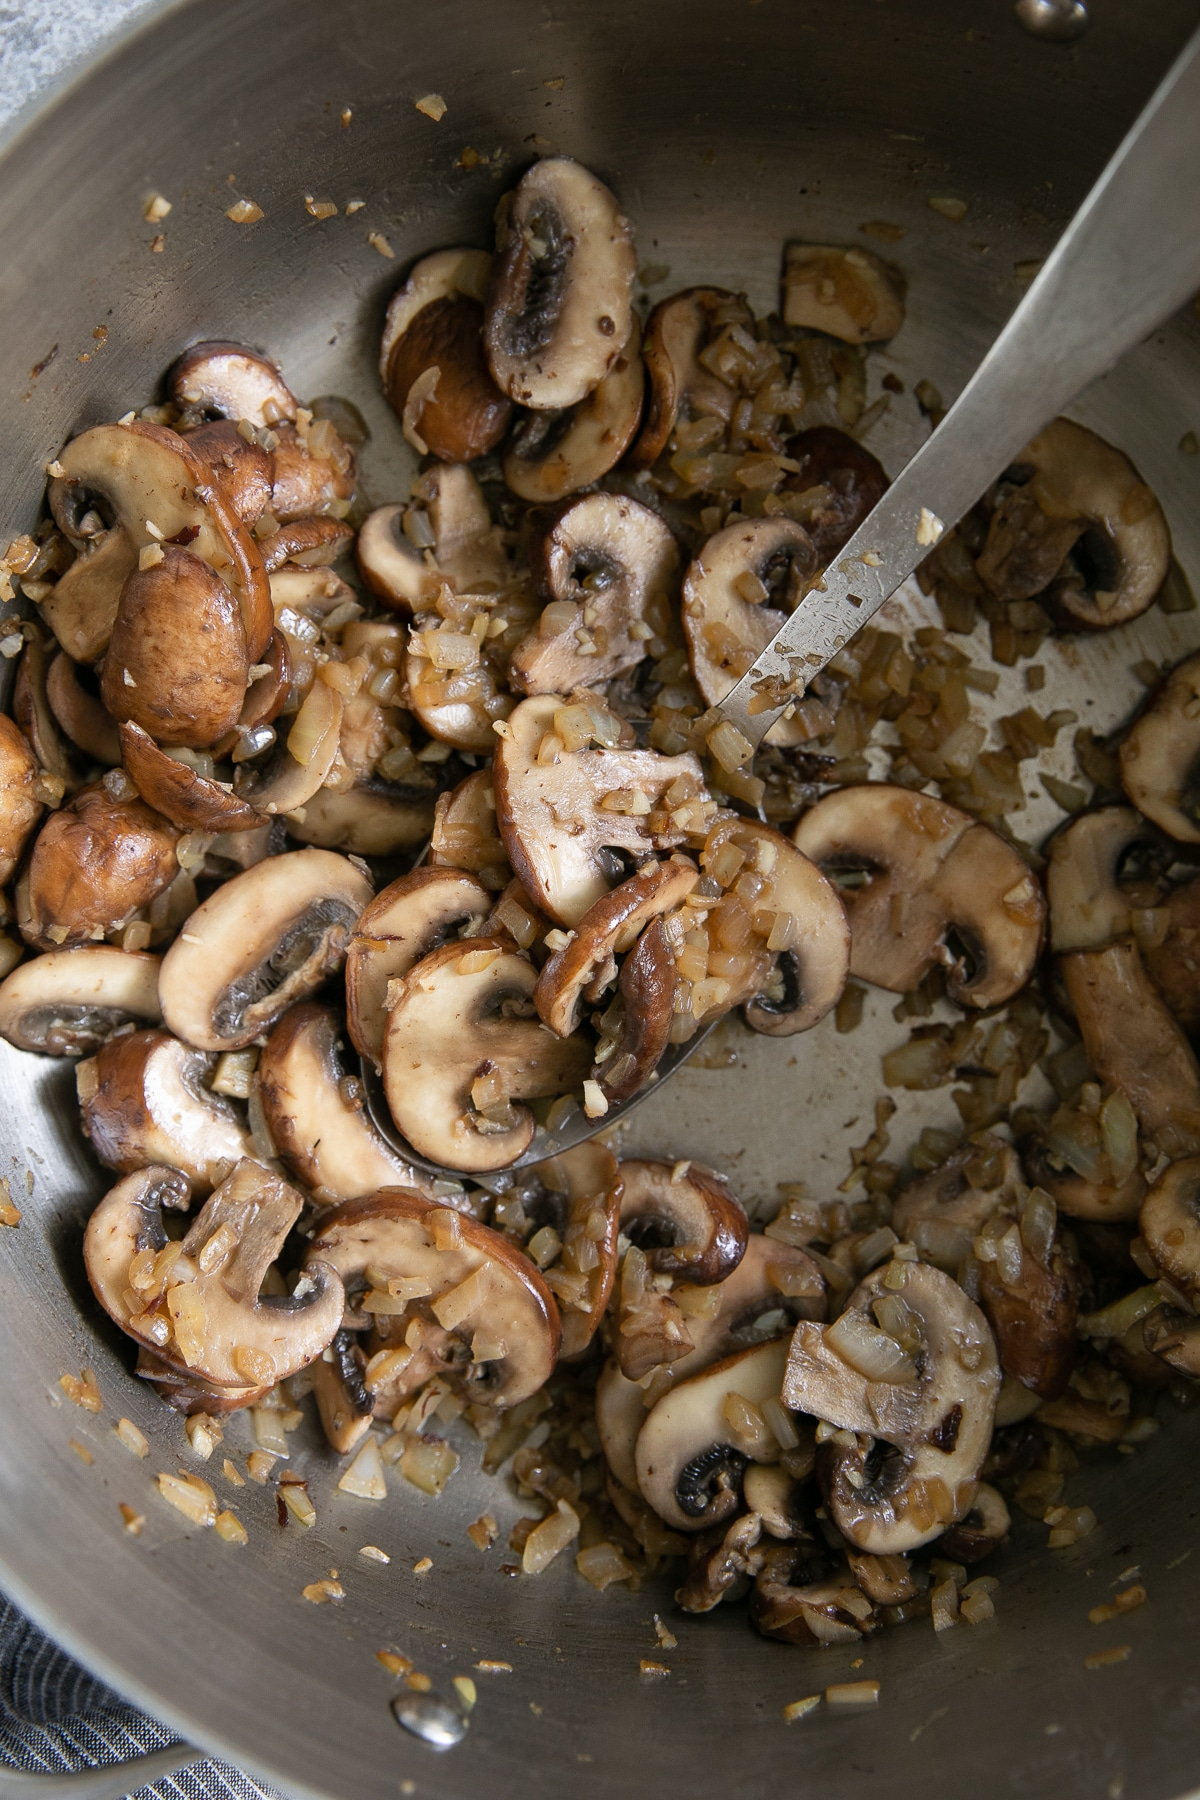 Large skillet filled with cooked onions, garlic, and mushrooms.